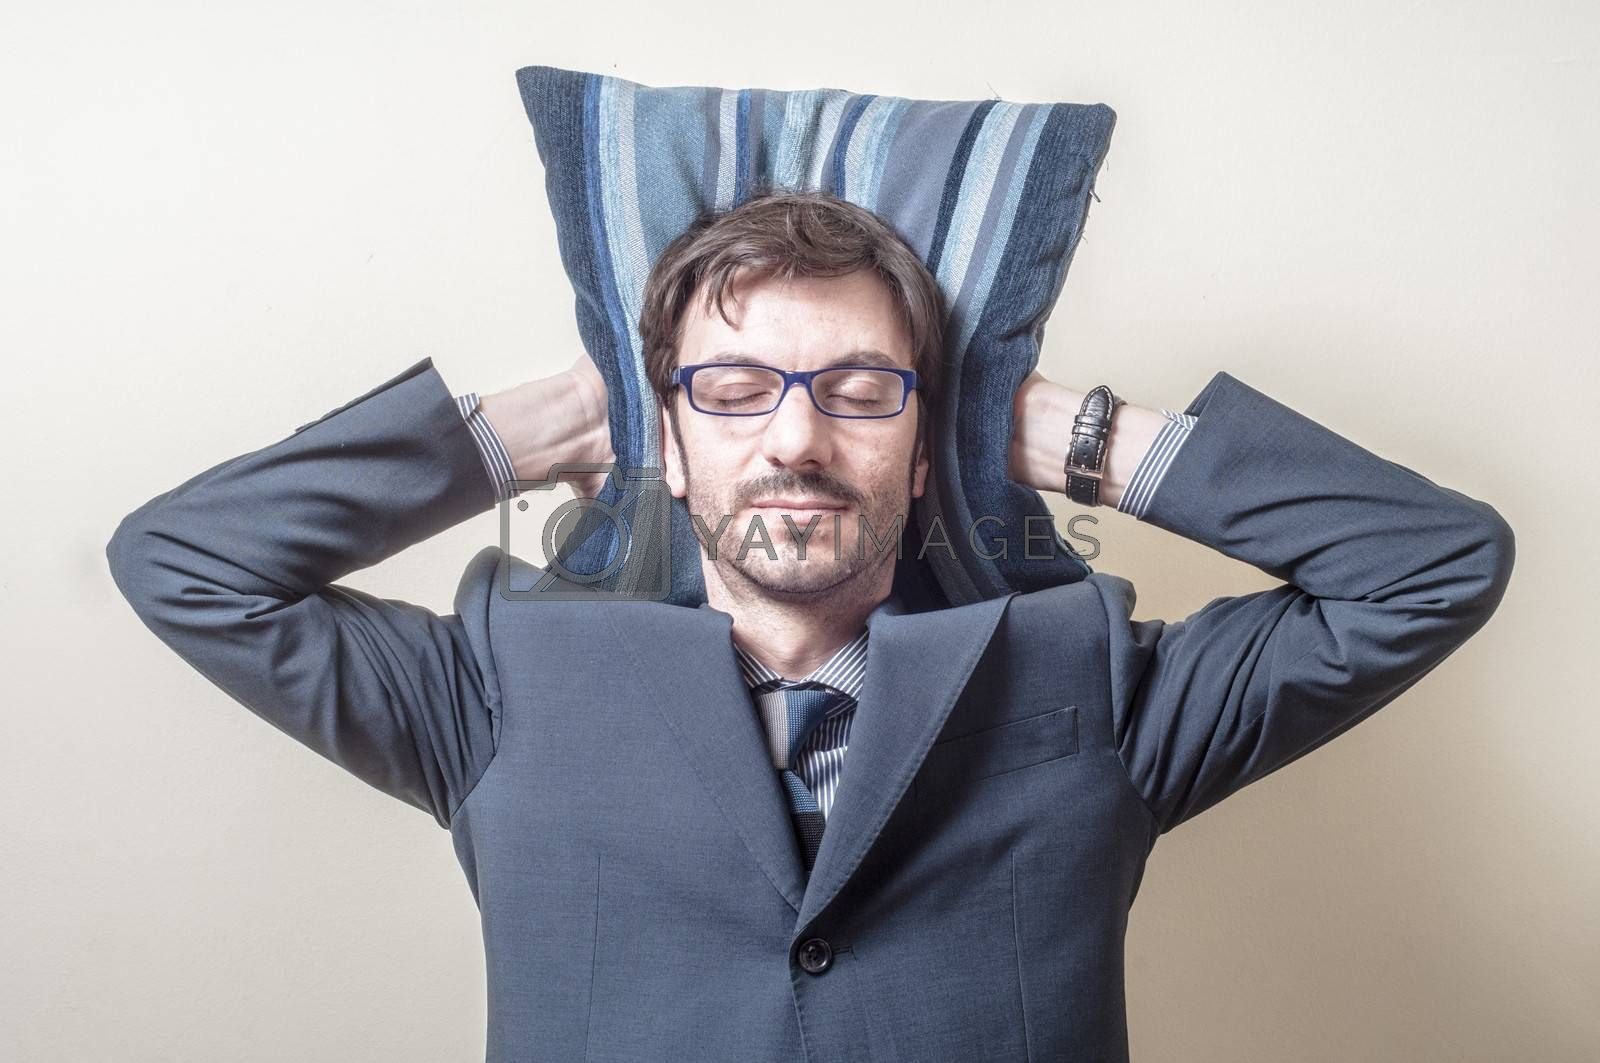 Royalty free image of businessman sleeping on pillow by peus